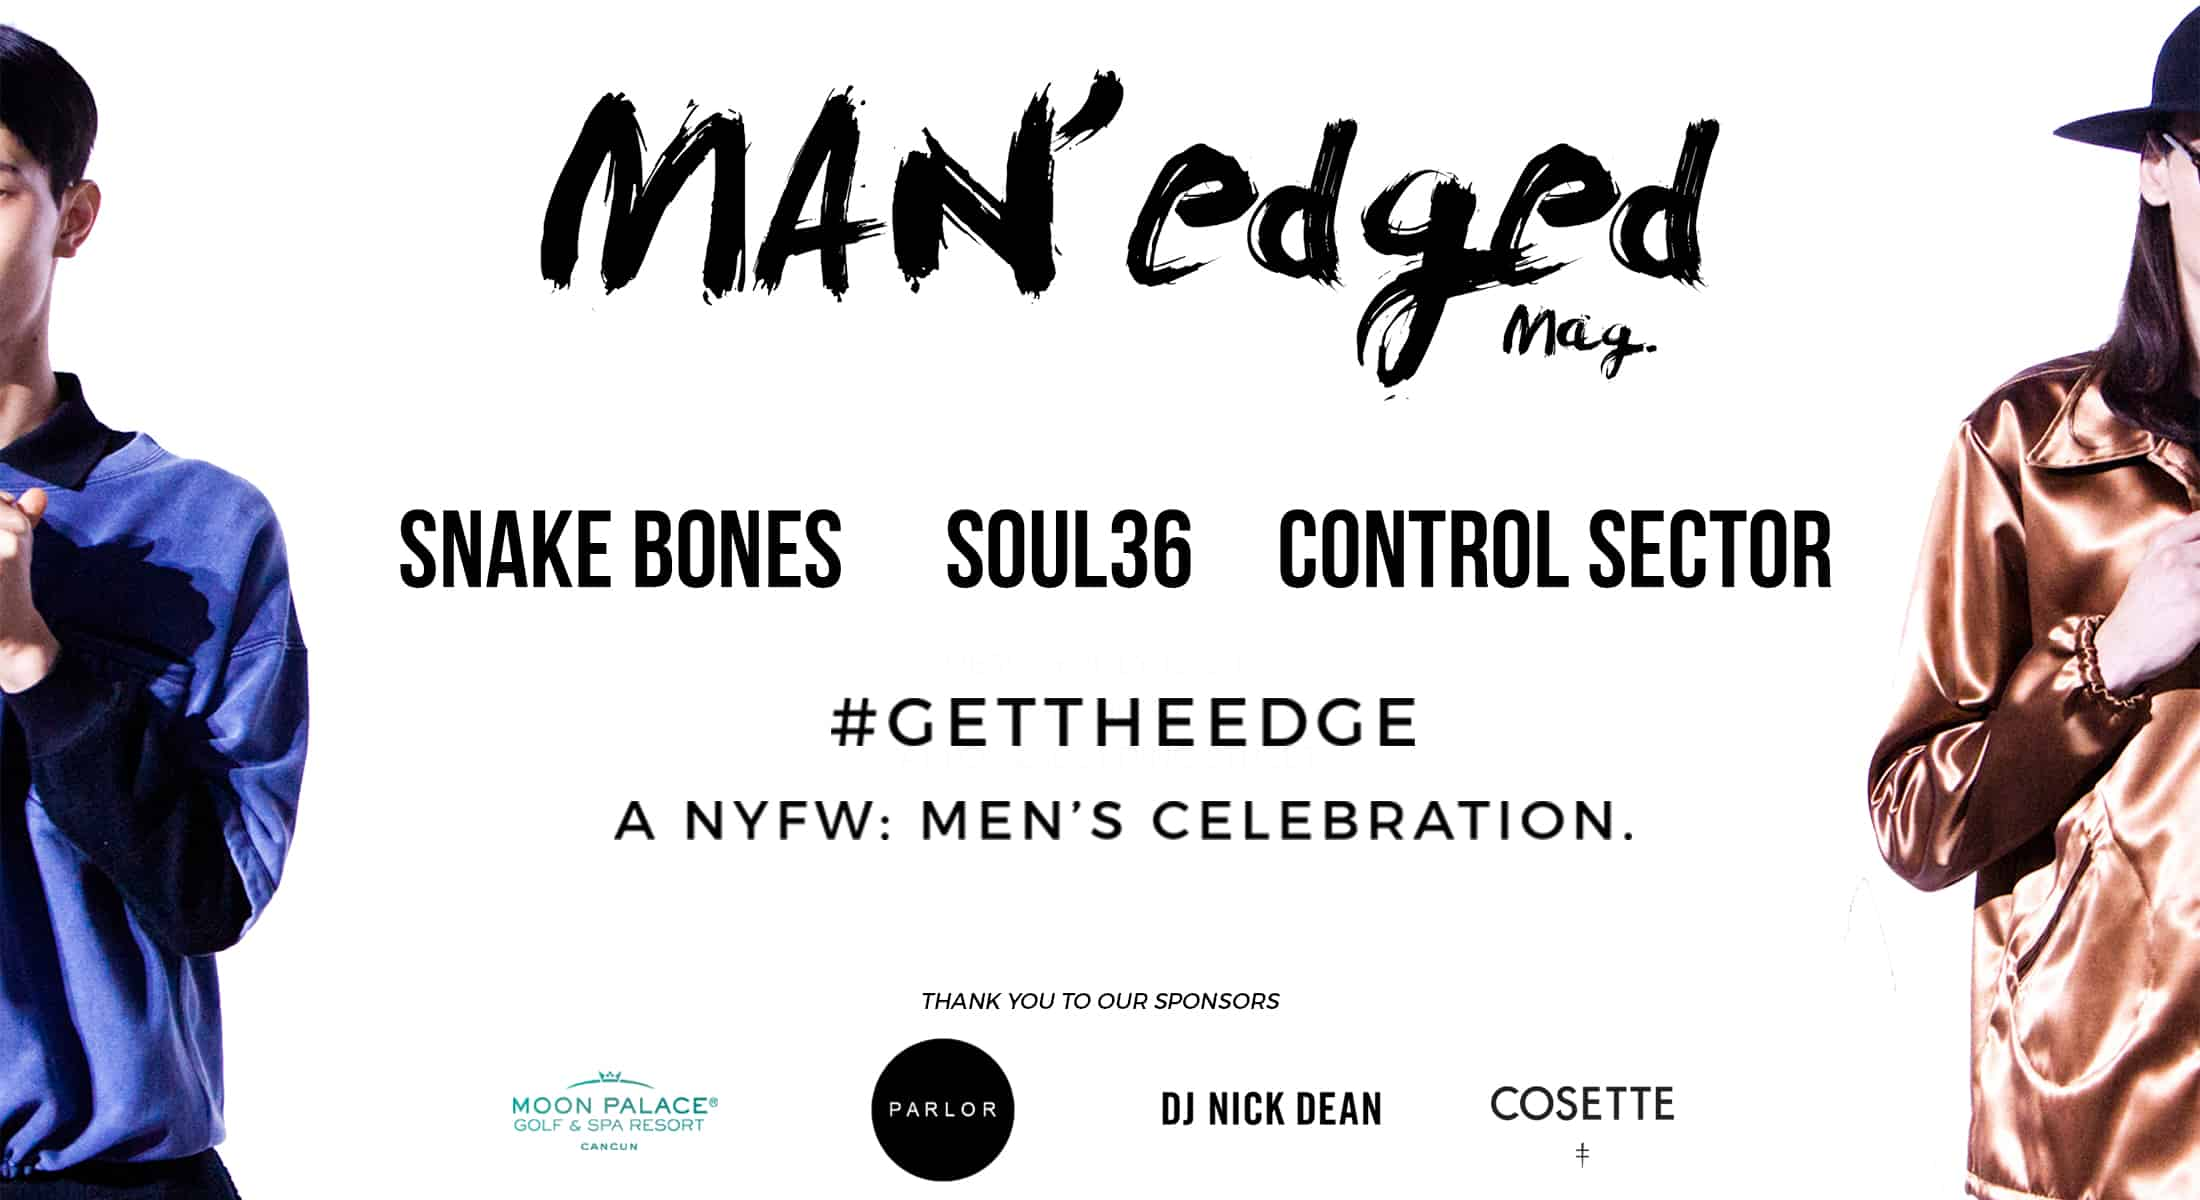 MAN'edged Magazine NYFWM Event New York Men's Fashion week (#NYFWM) is back and we're gearing up for an epic celebration. How? By hosting the hottest New York City men's fashion event of the season. Invited guests will sip complimentary cocktails, network with high-profile